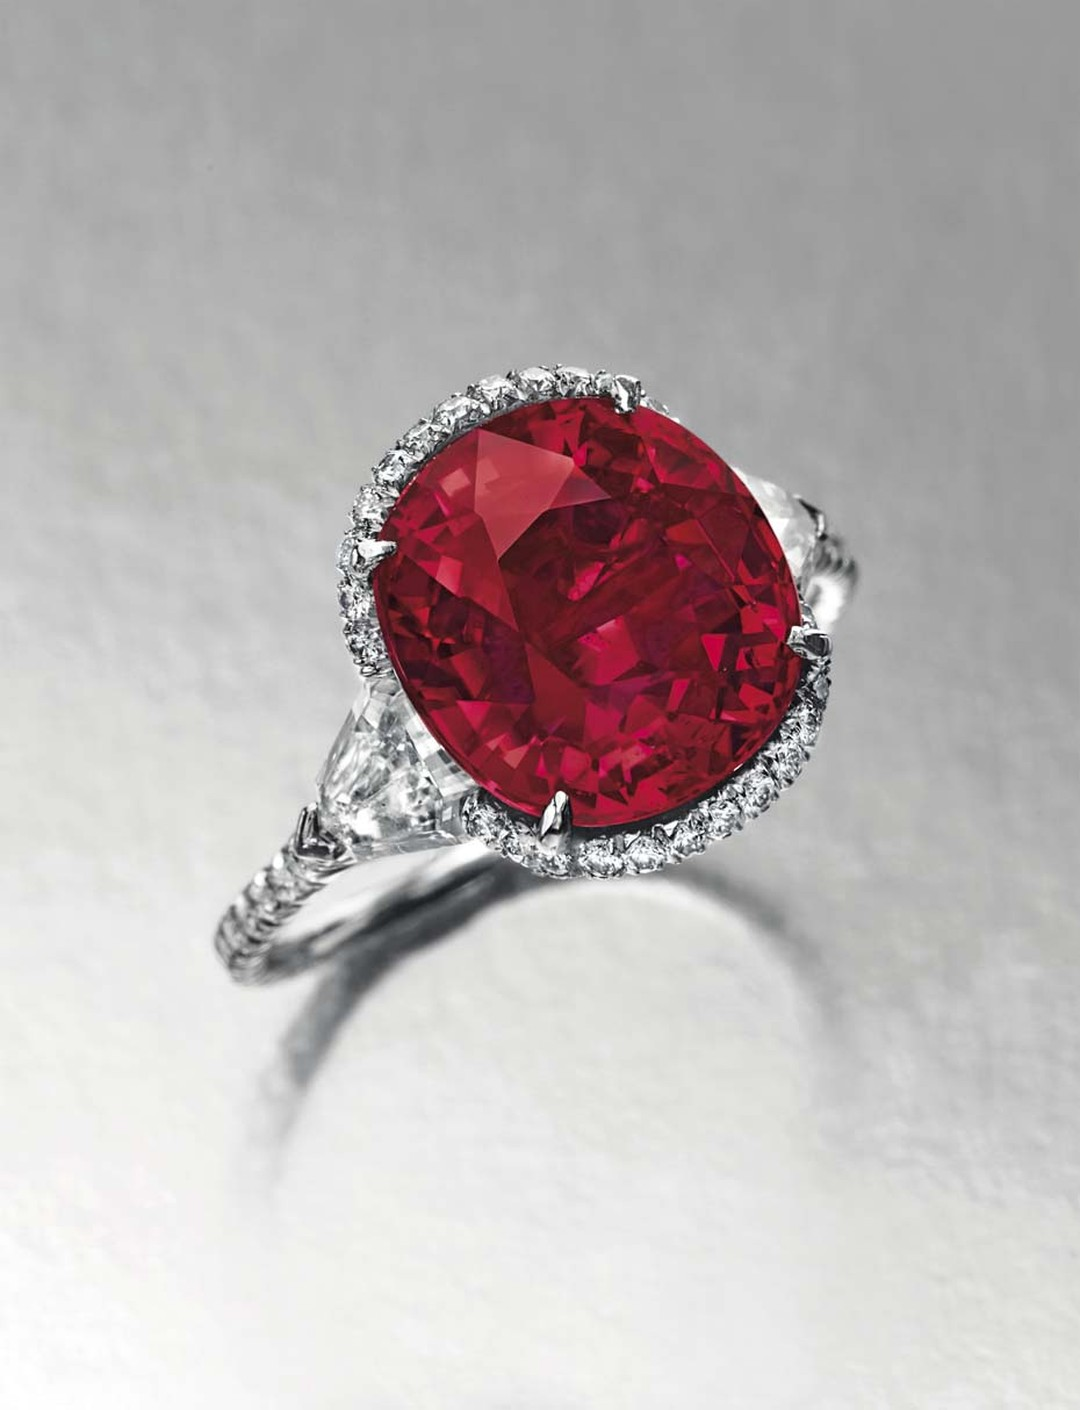 Lot 129, a 6.25ct cushion-cut Burmese ruby and diamond ring, from the private collection of animal rights campaigner Riki Shaw